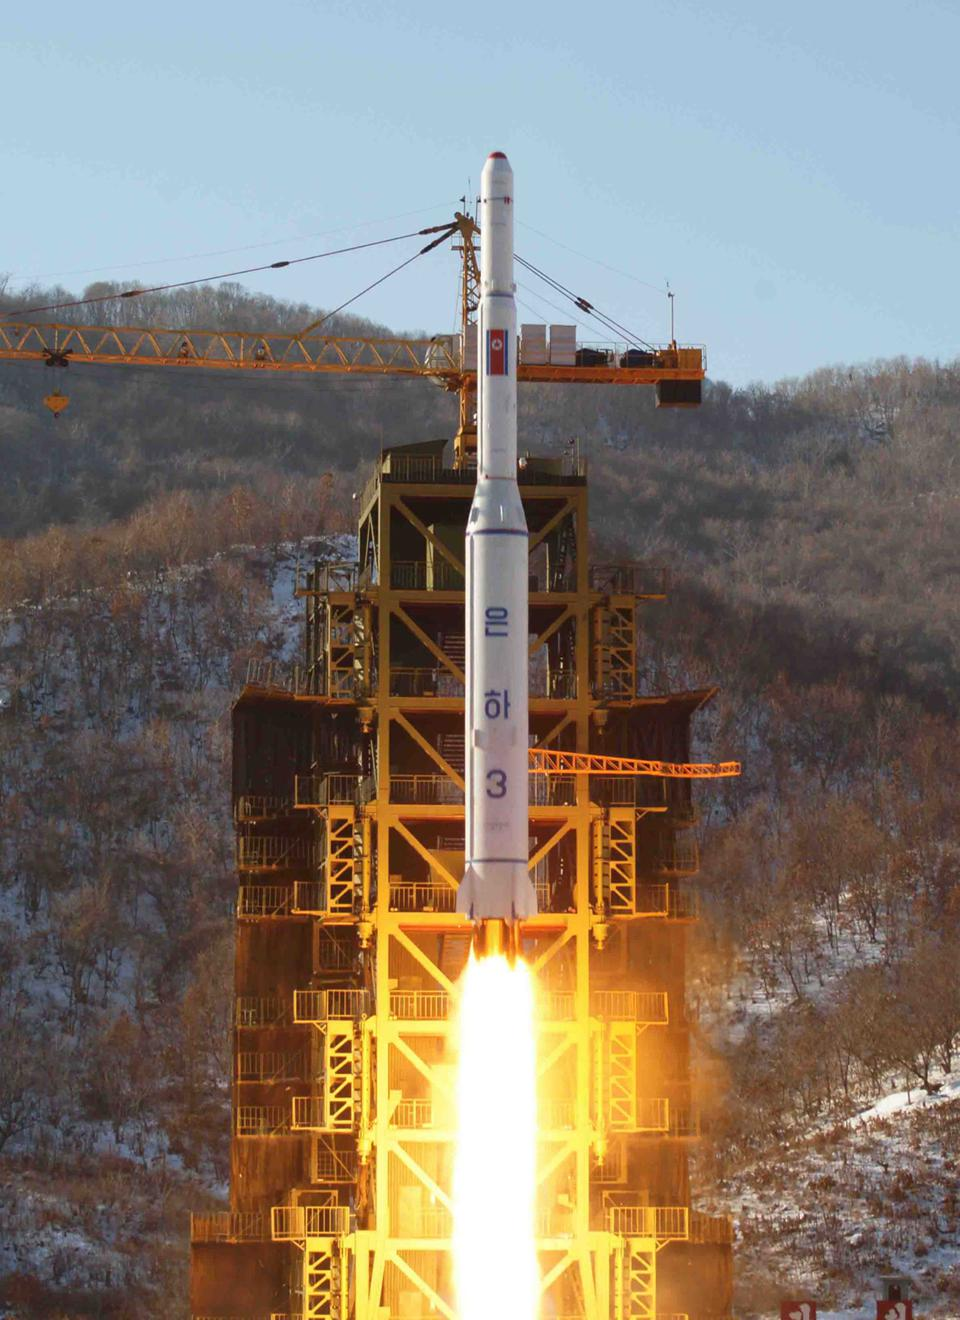 North Korea Aims For Submarine-Launched Nuclear Missiles